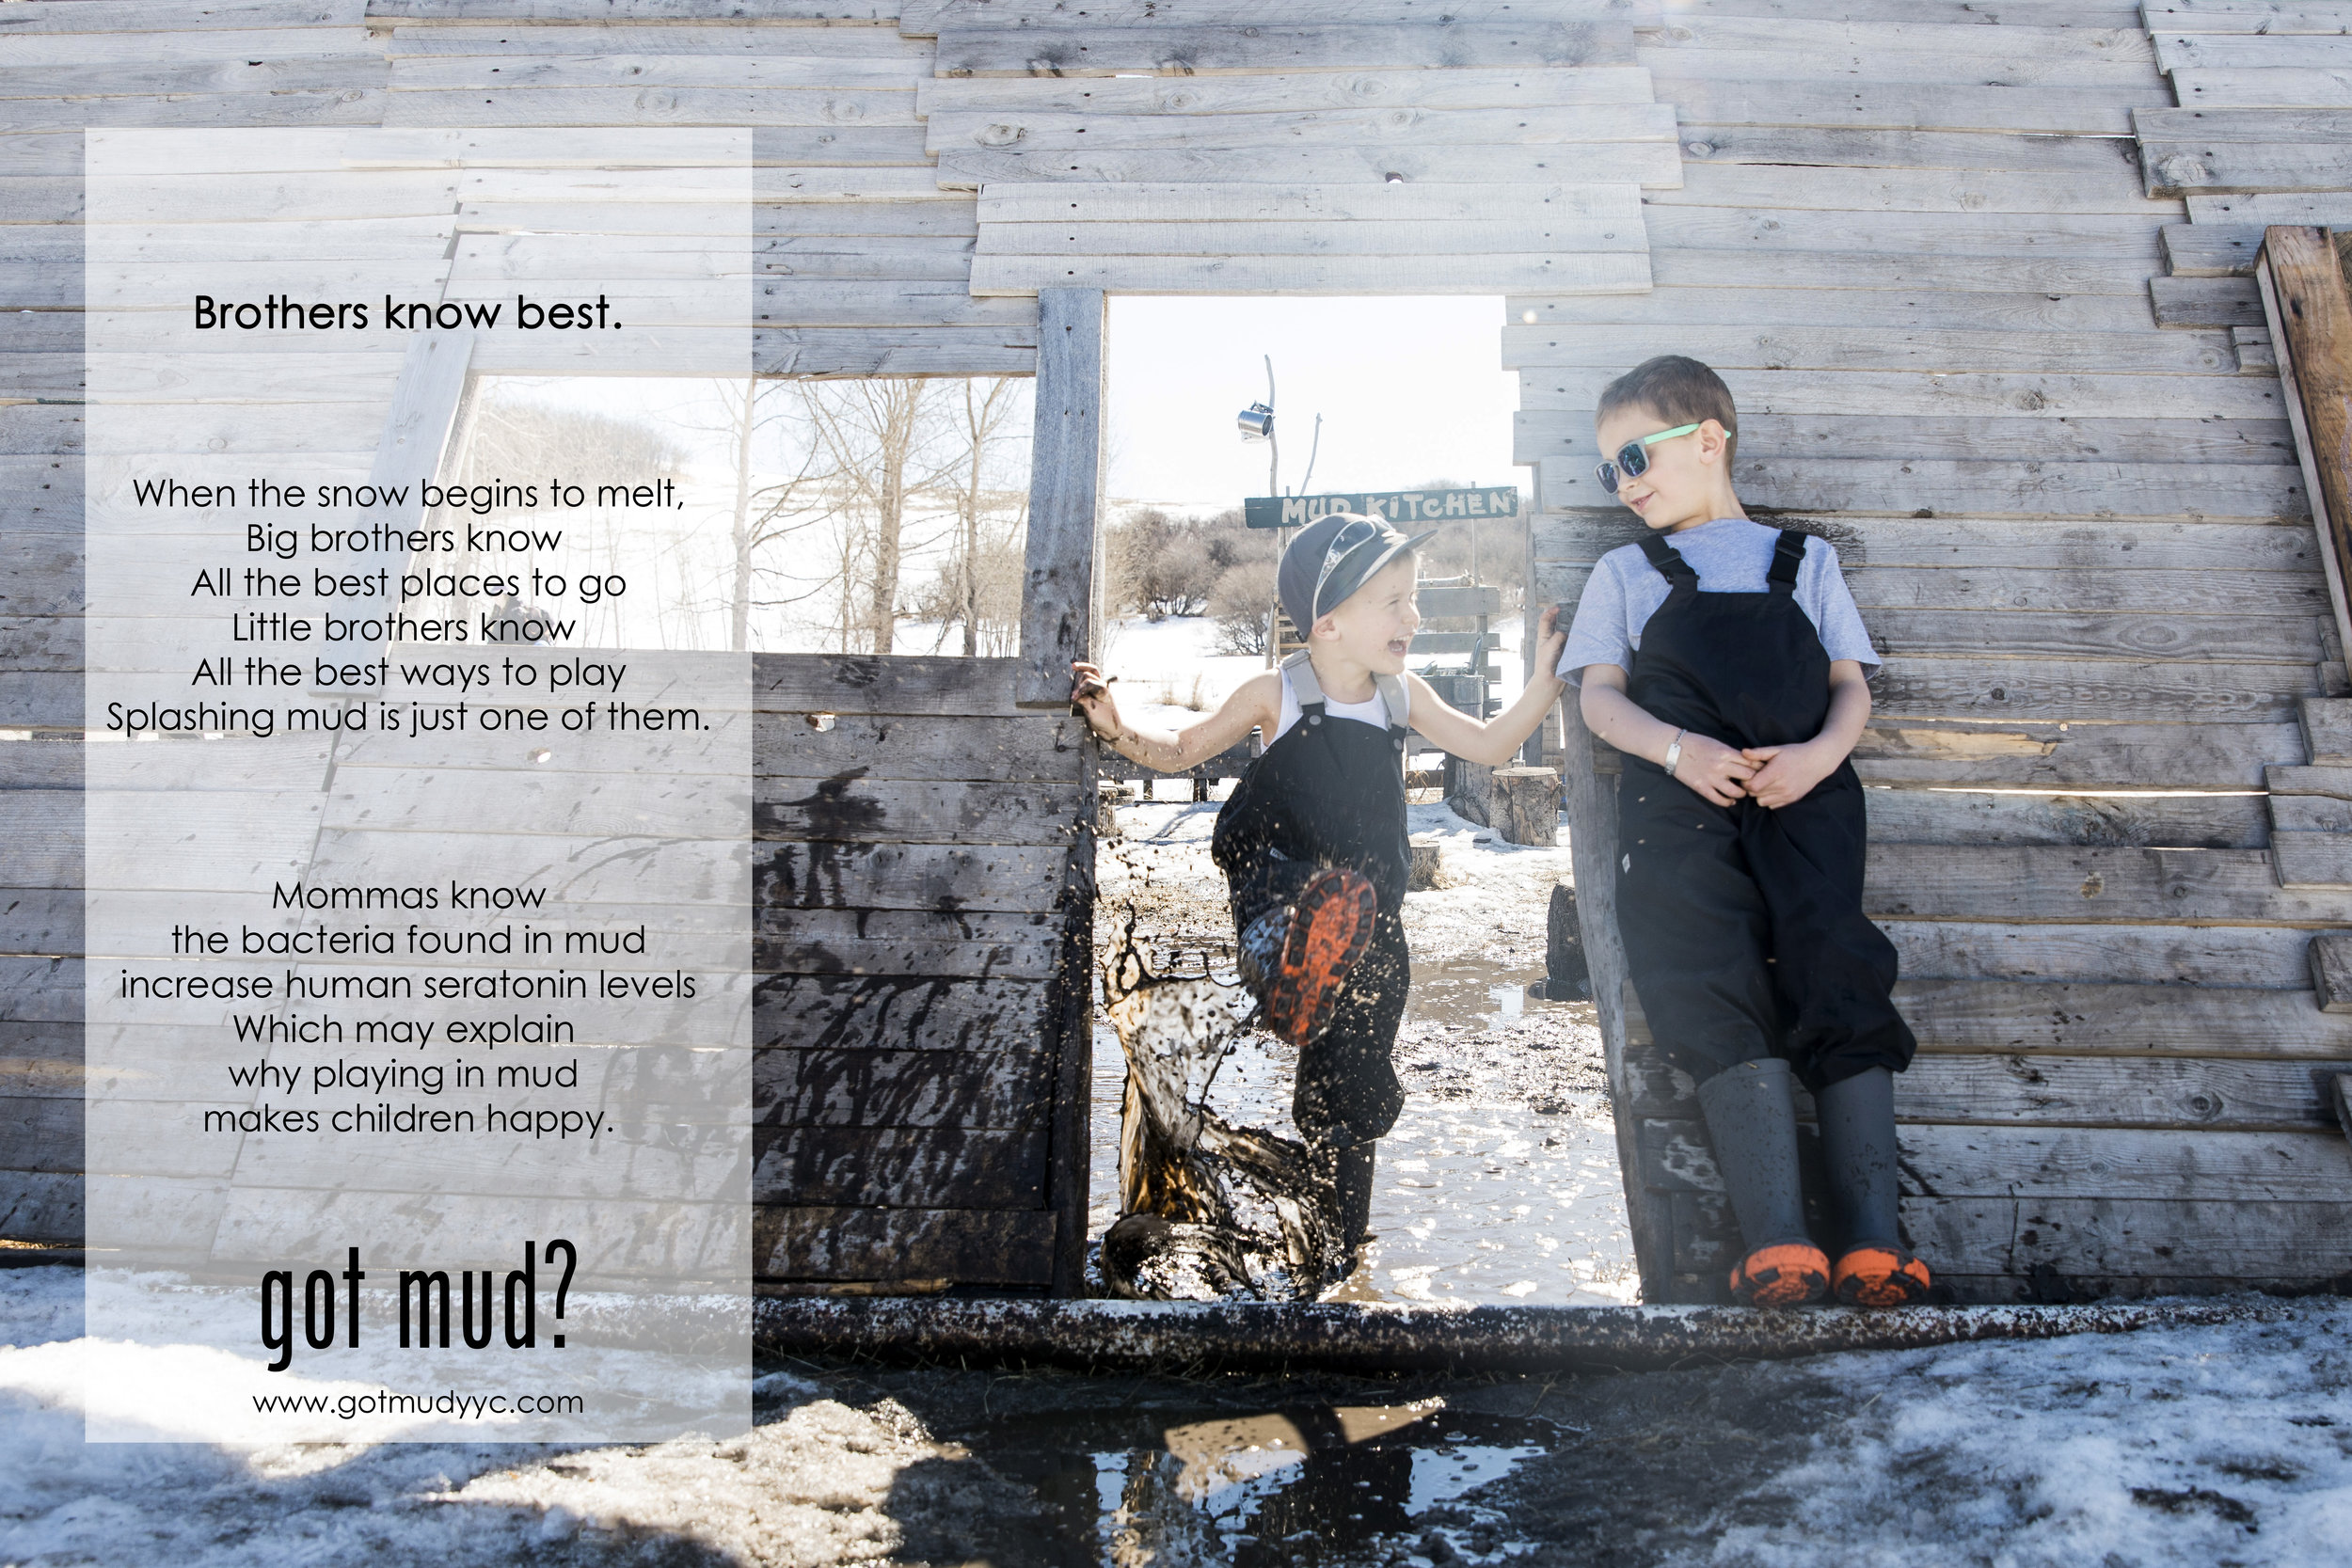 - Learn more about the health benefits of mud in these links:What is Mud's Dirty Little Secret, yes! magazineBenefits of dirt and mud play, familytimeinc.comBenefits of mud baths, howstuffworks.com7 surprising health benefits of eating dirt, babble.com